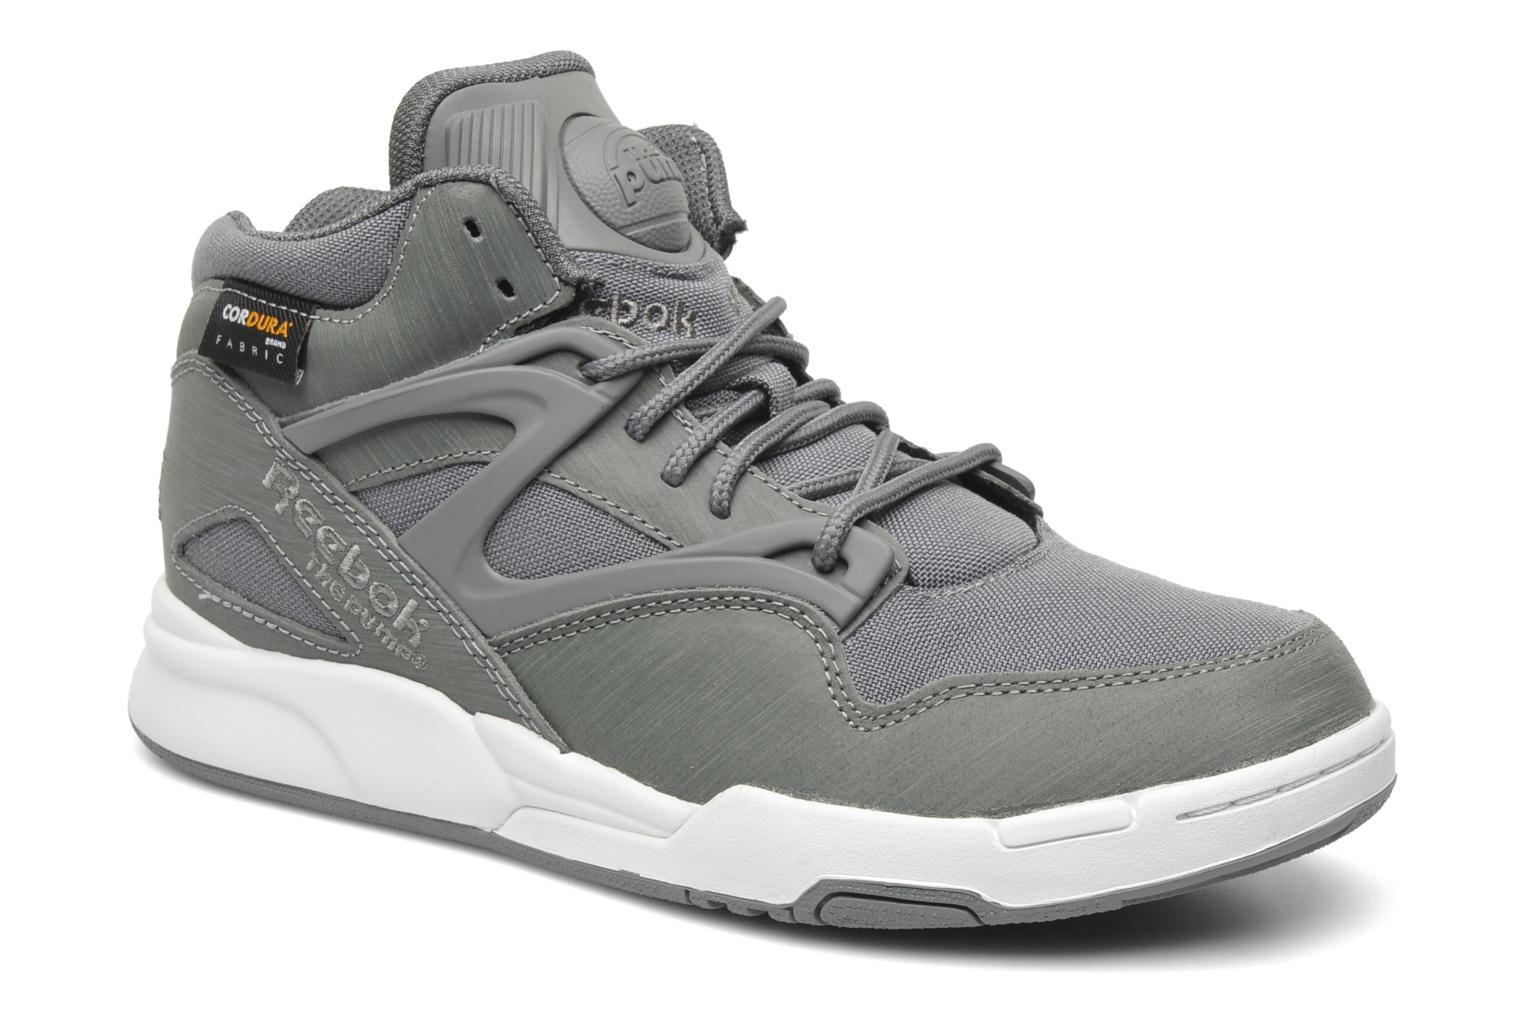 reebok pump omni lite cordura gris baskets chez sarenza 150822. Black Bedroom Furniture Sets. Home Design Ideas